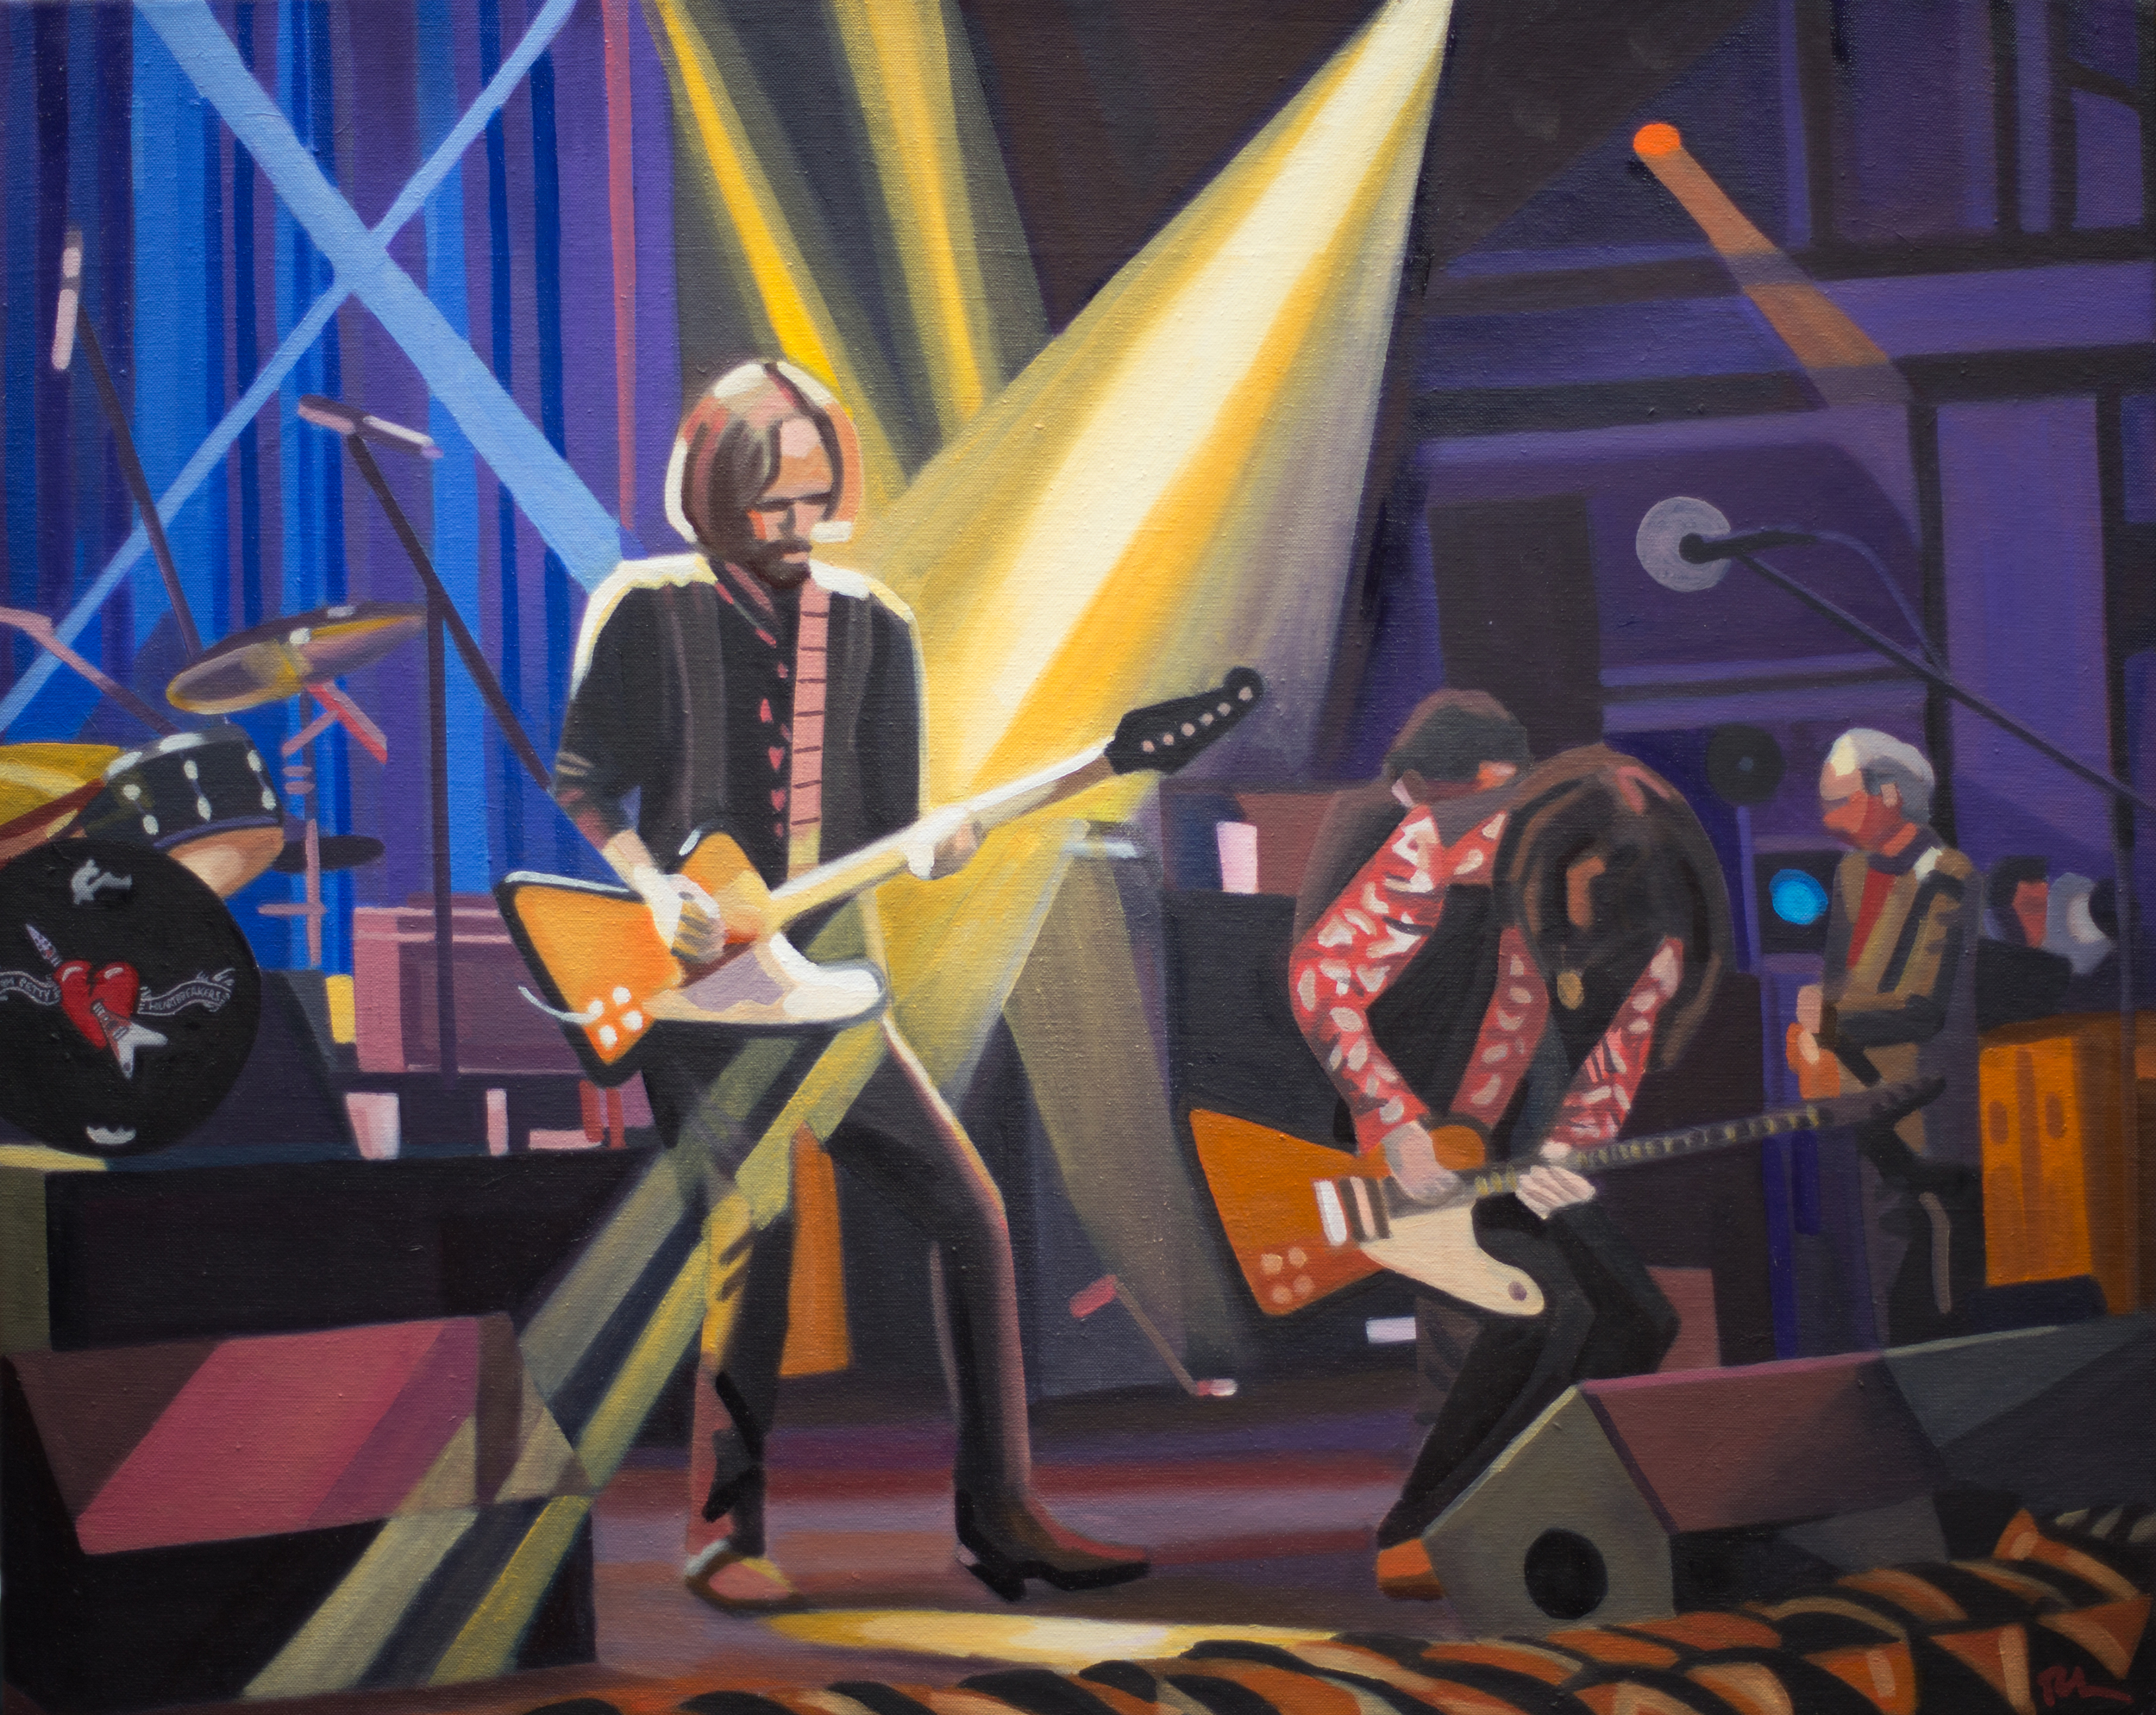 "Tom Petty & the Heartbreakers @ Beacon Theater, NYC - oil on canvas - 24"" x 30"""